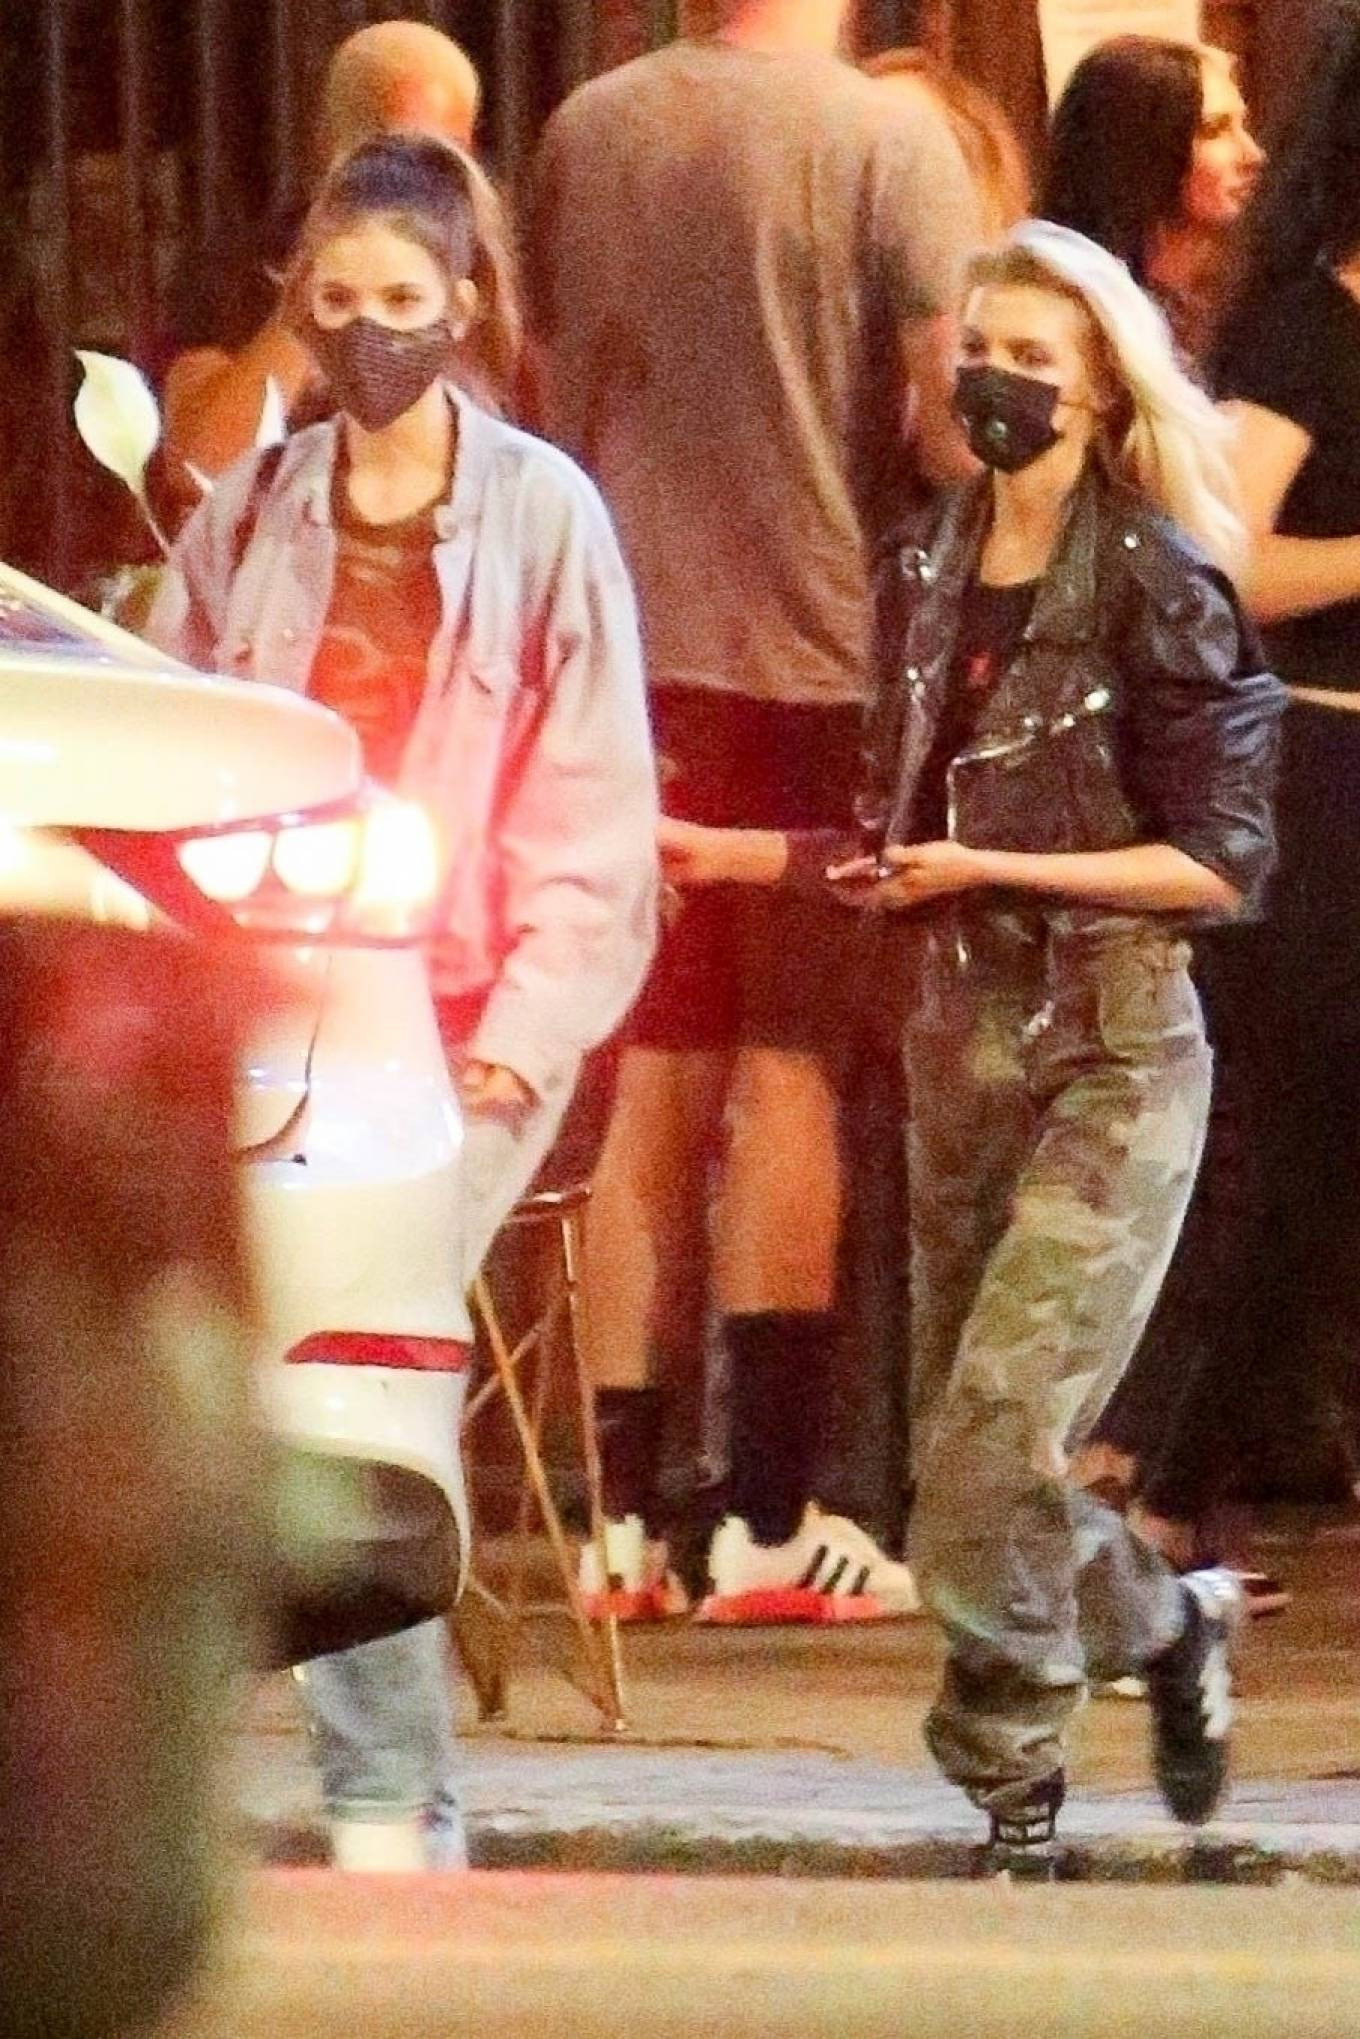 Barbara Palvin 2020 : Dylan Sprouse and Barbara Palvin with KJ Apa and Stella Maxwell – Night out in Silverlake -10